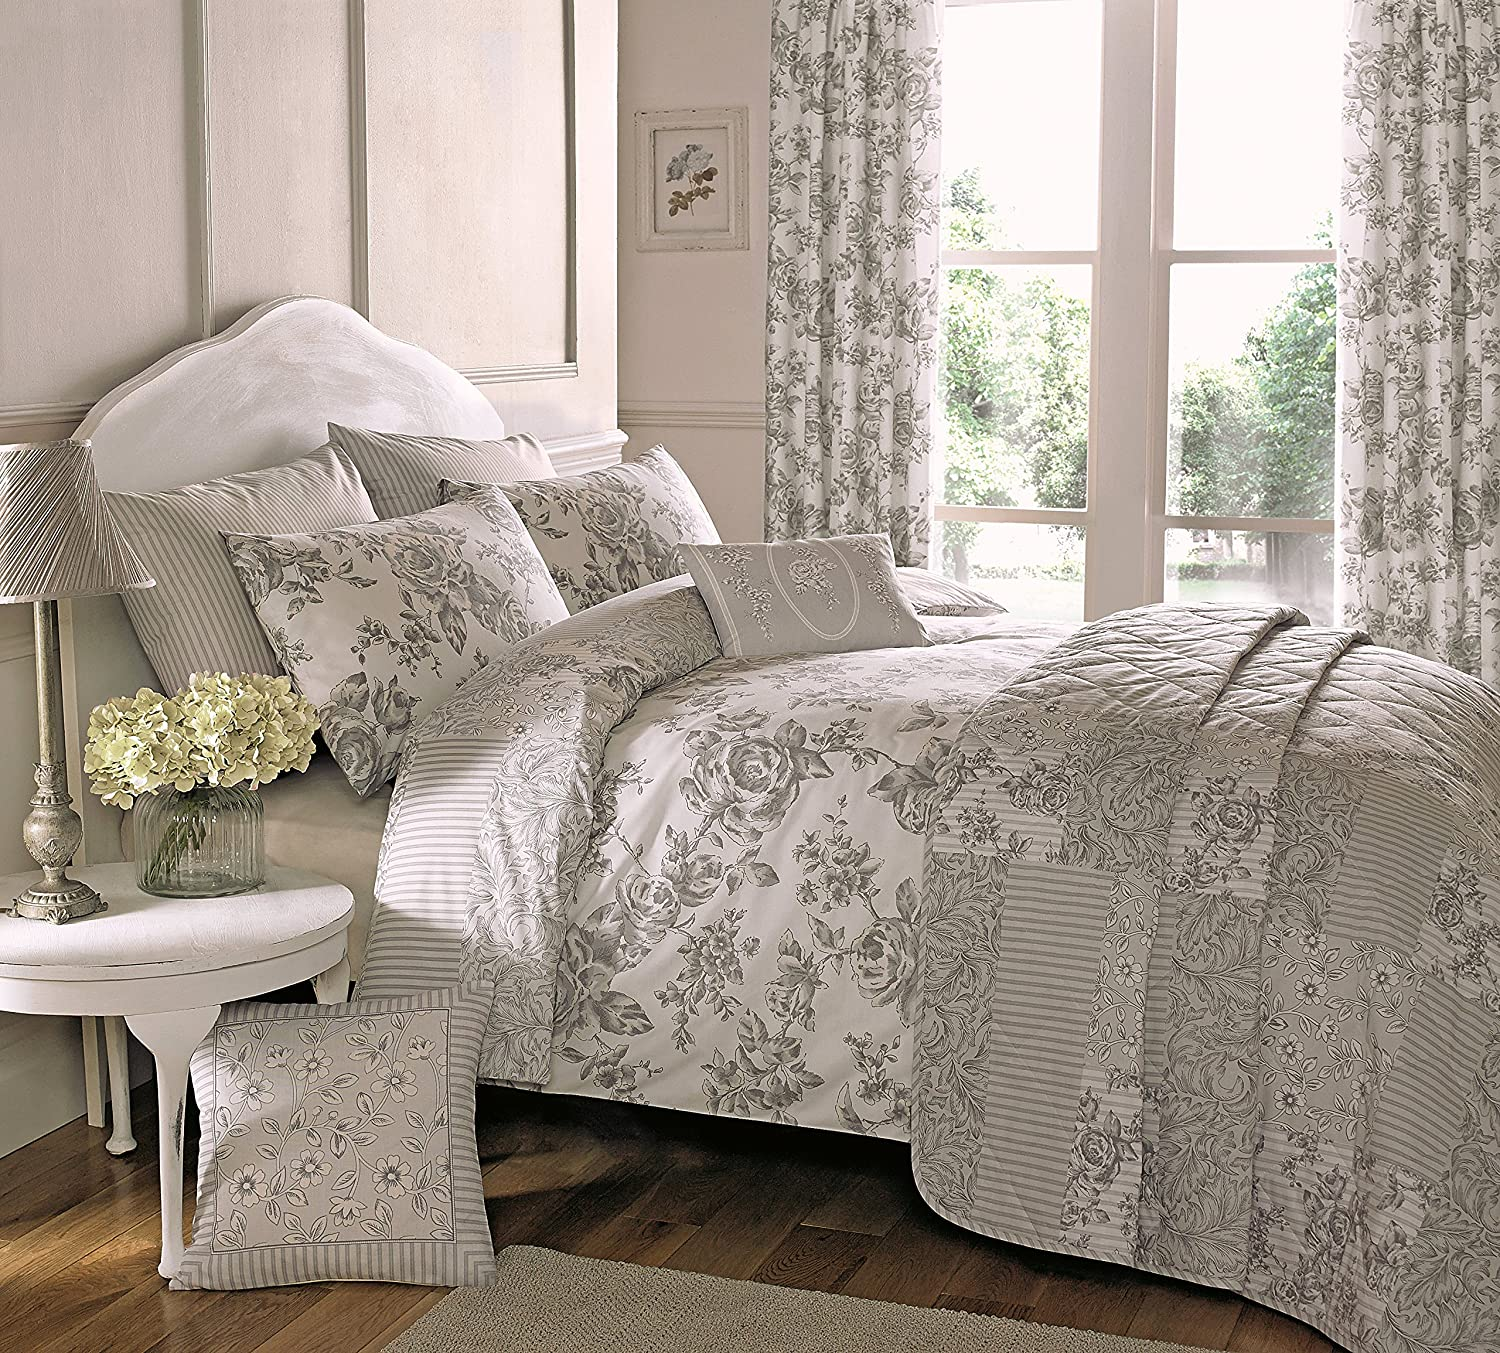 beyond bath flannel set from duvet bed in tribeca cover floral reversible living white gsm printed king buy blue covers